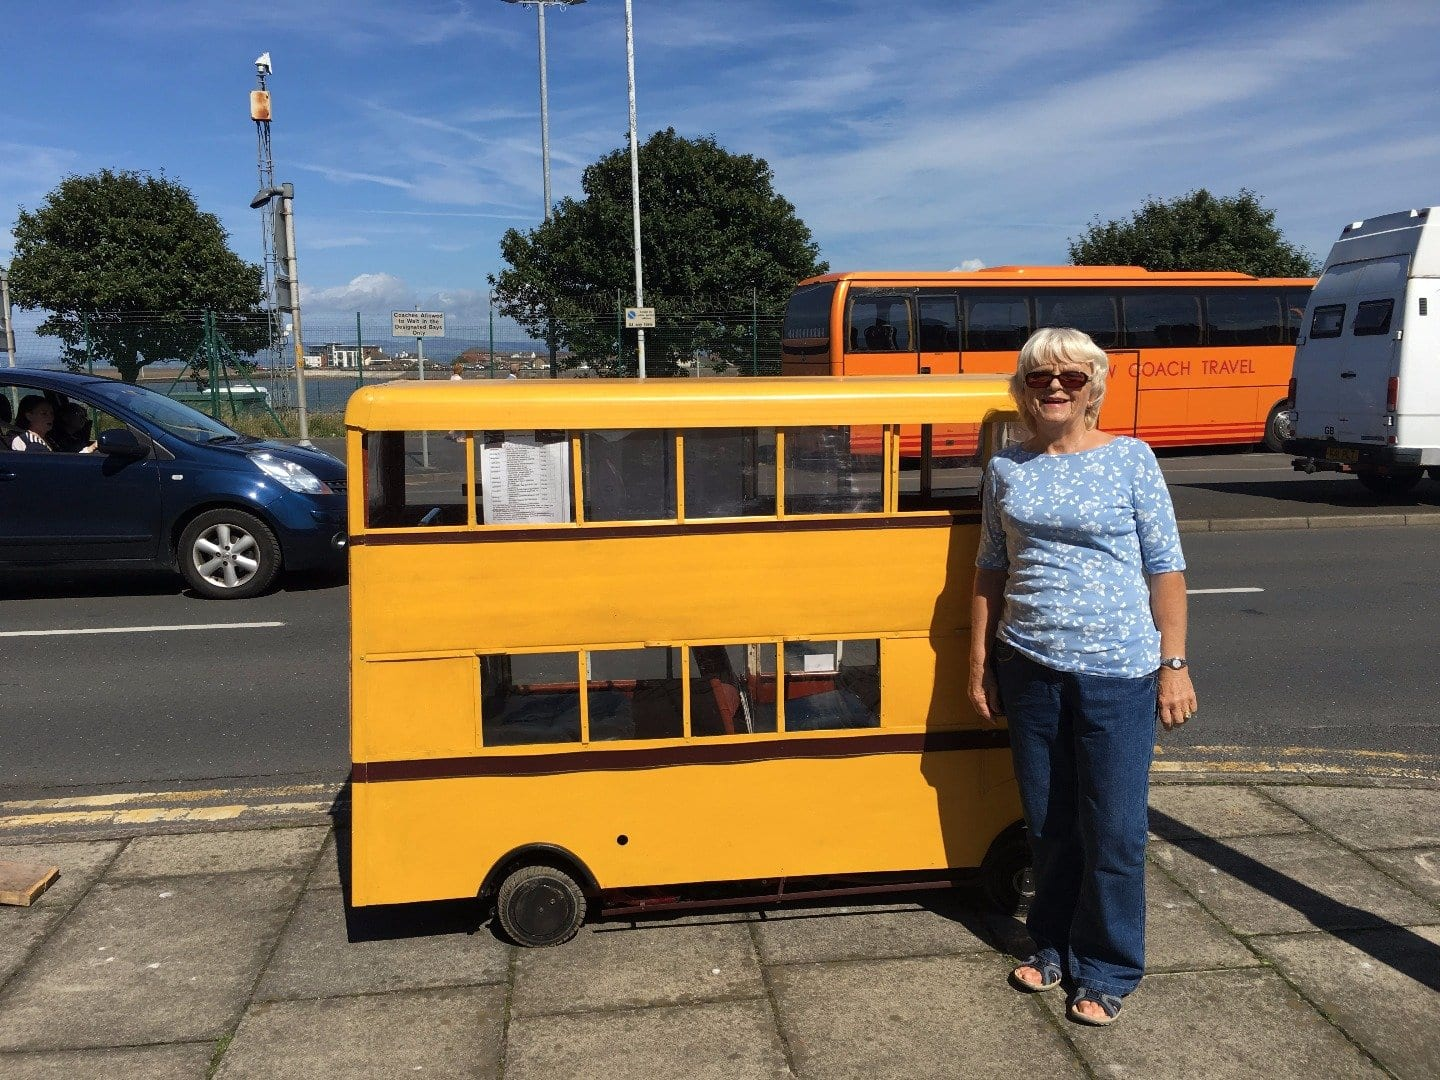 A little bus for Chrissie! Fleetwood Tram Sunday 2017 Photos